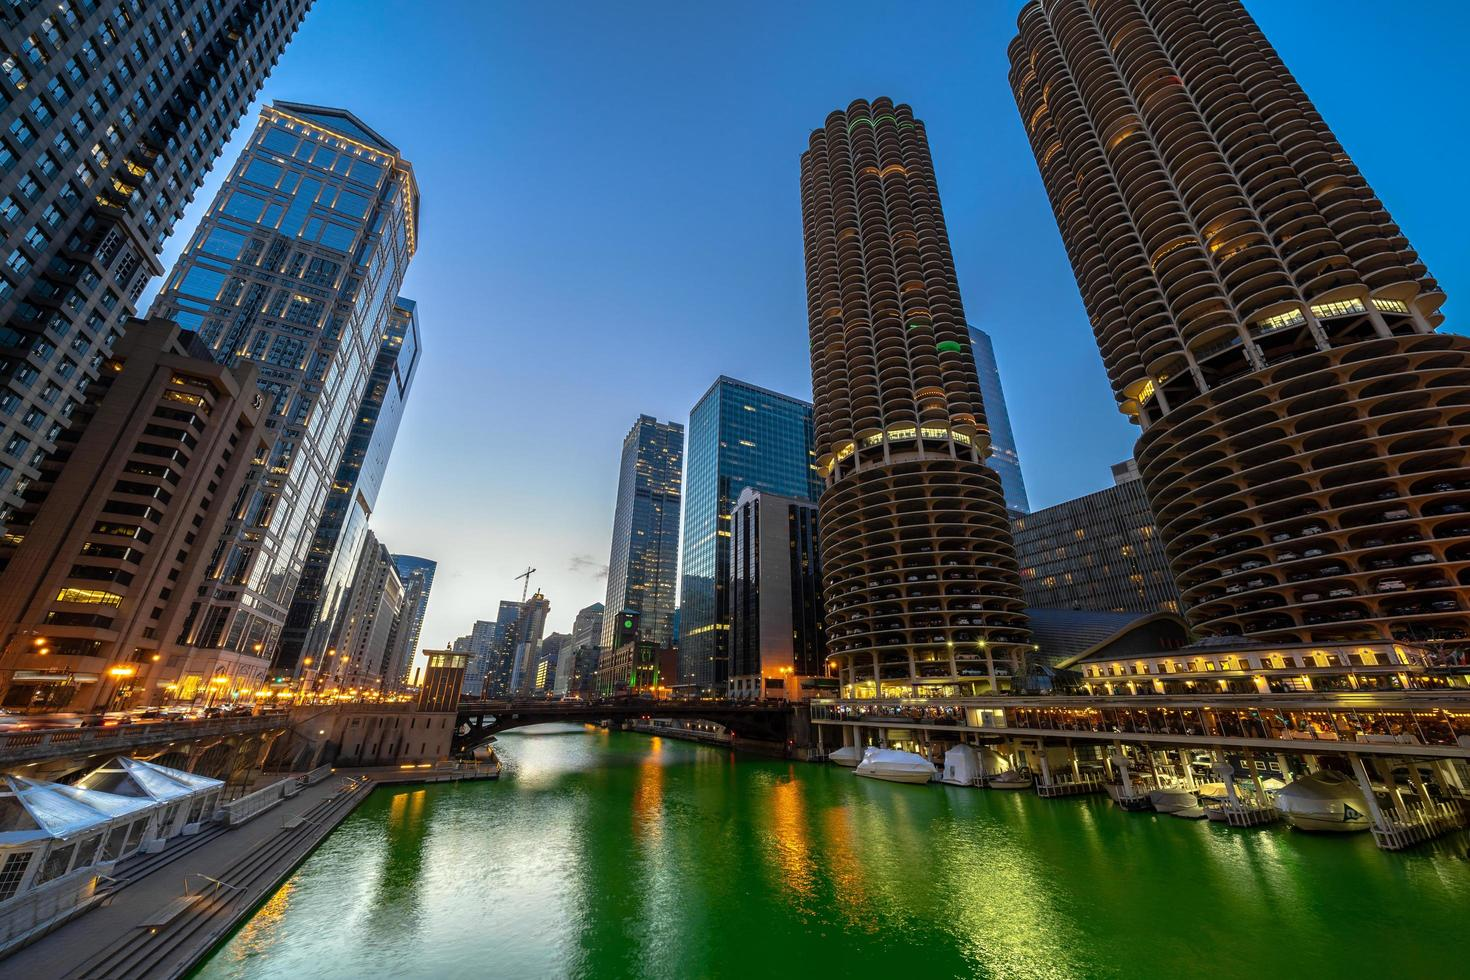 The Chicago riverwalk cityscape river side at the twilight. photo